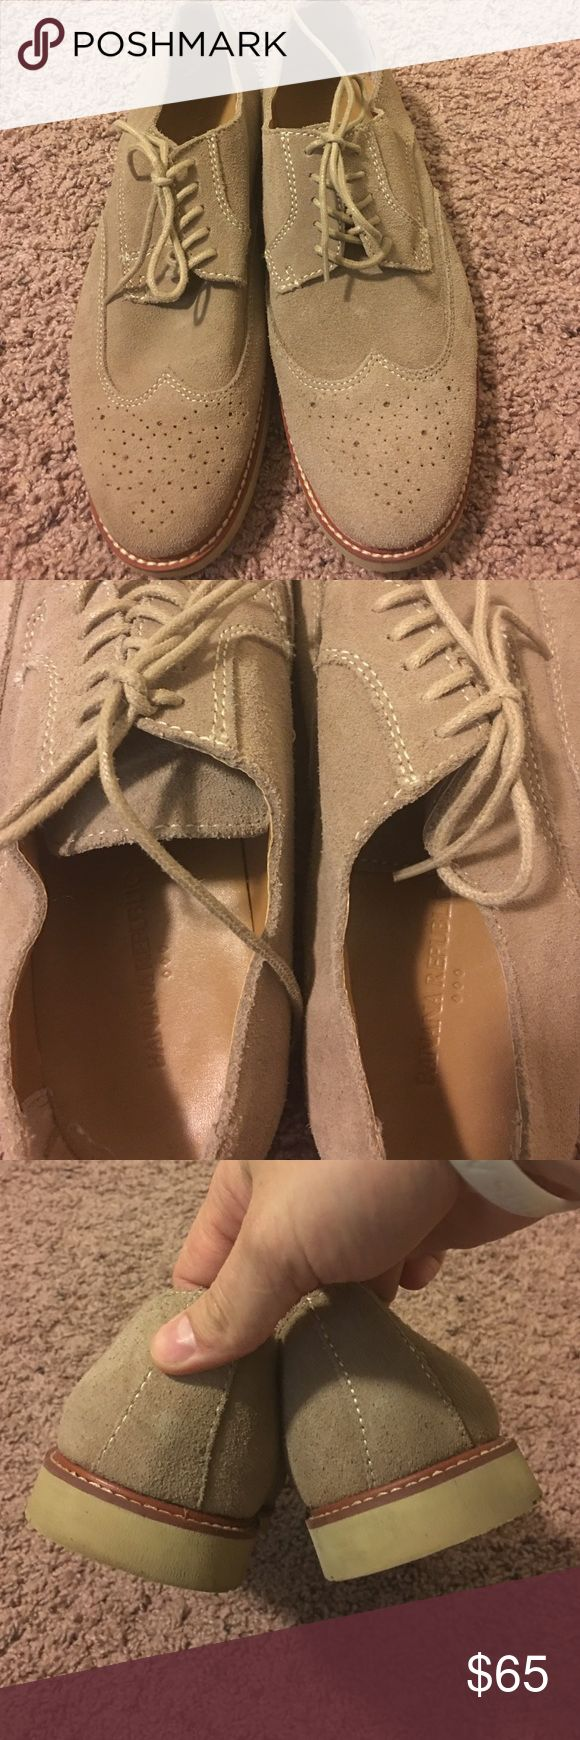 Banana Republic Wingtips. Great pair of Banana Republic Shoes. Worn a handful of times. No wear to soles at all. Banana Republic Shoes Oxfords & Derbys